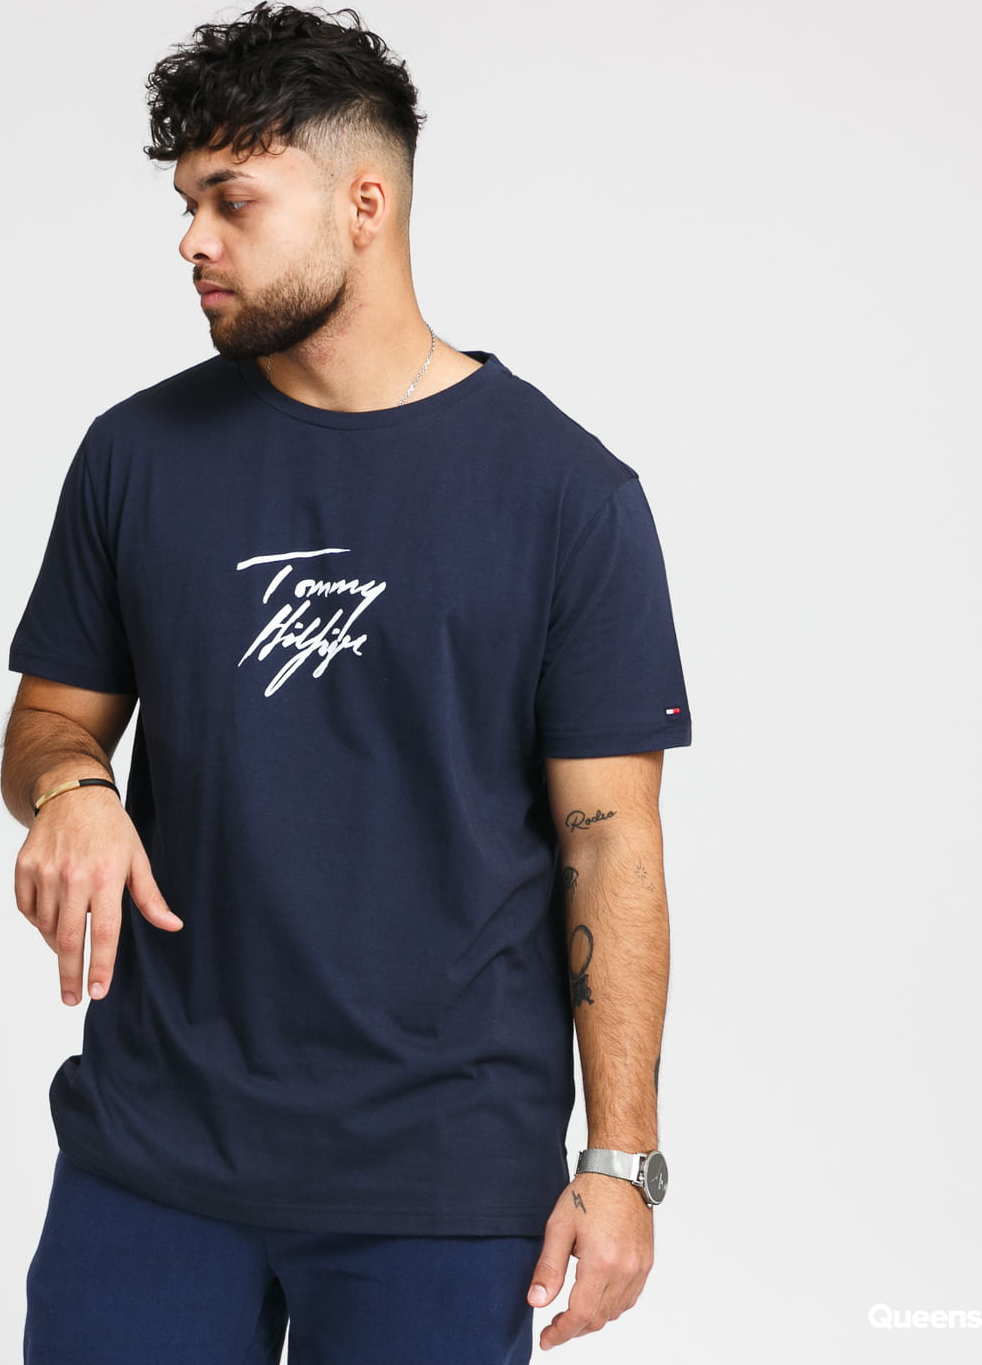 Tommy Hilfiger CN SS Tee Logo navy M